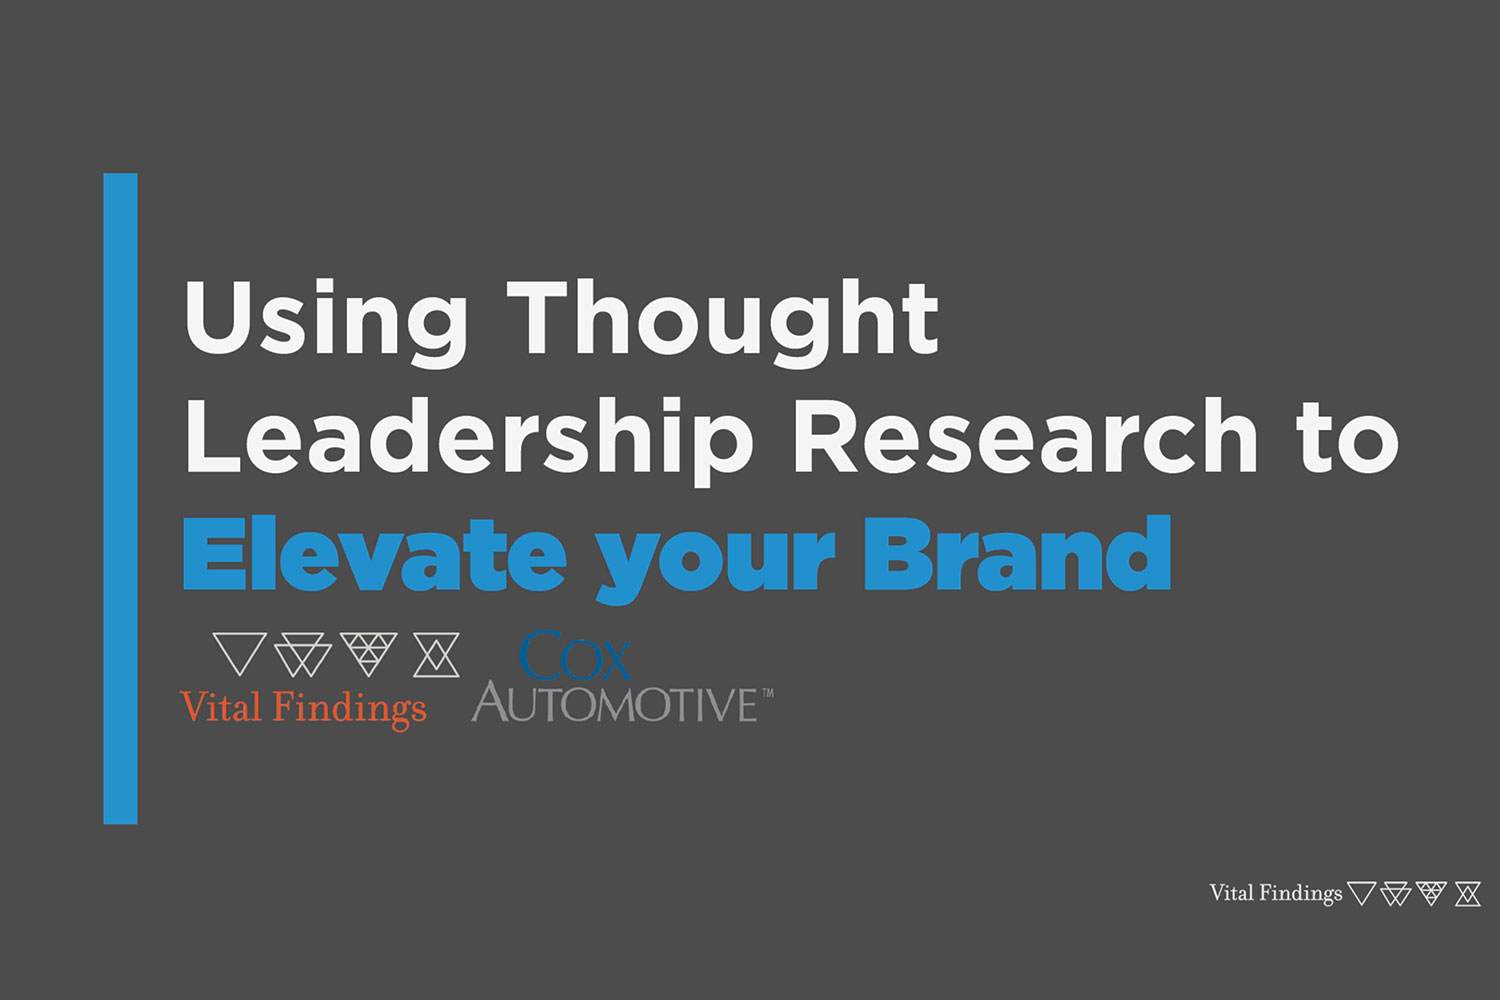 Using Thought Leadership Research to Elevate Your Brand